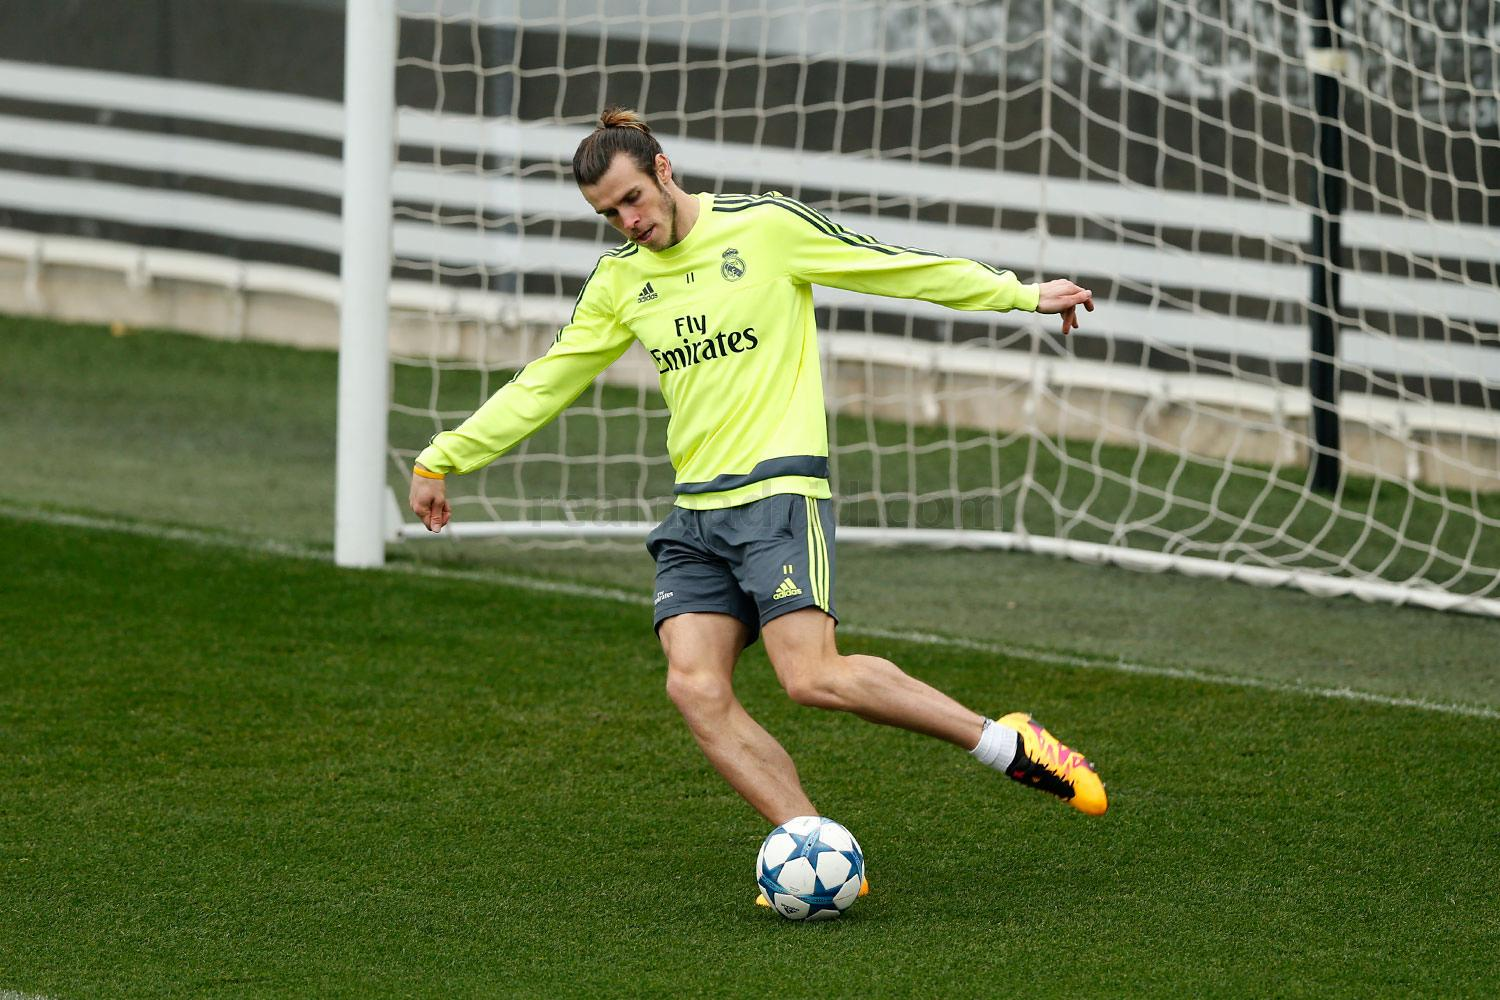 Real Madrid - Entrenamiento del Real Madrid - 28-01-2016